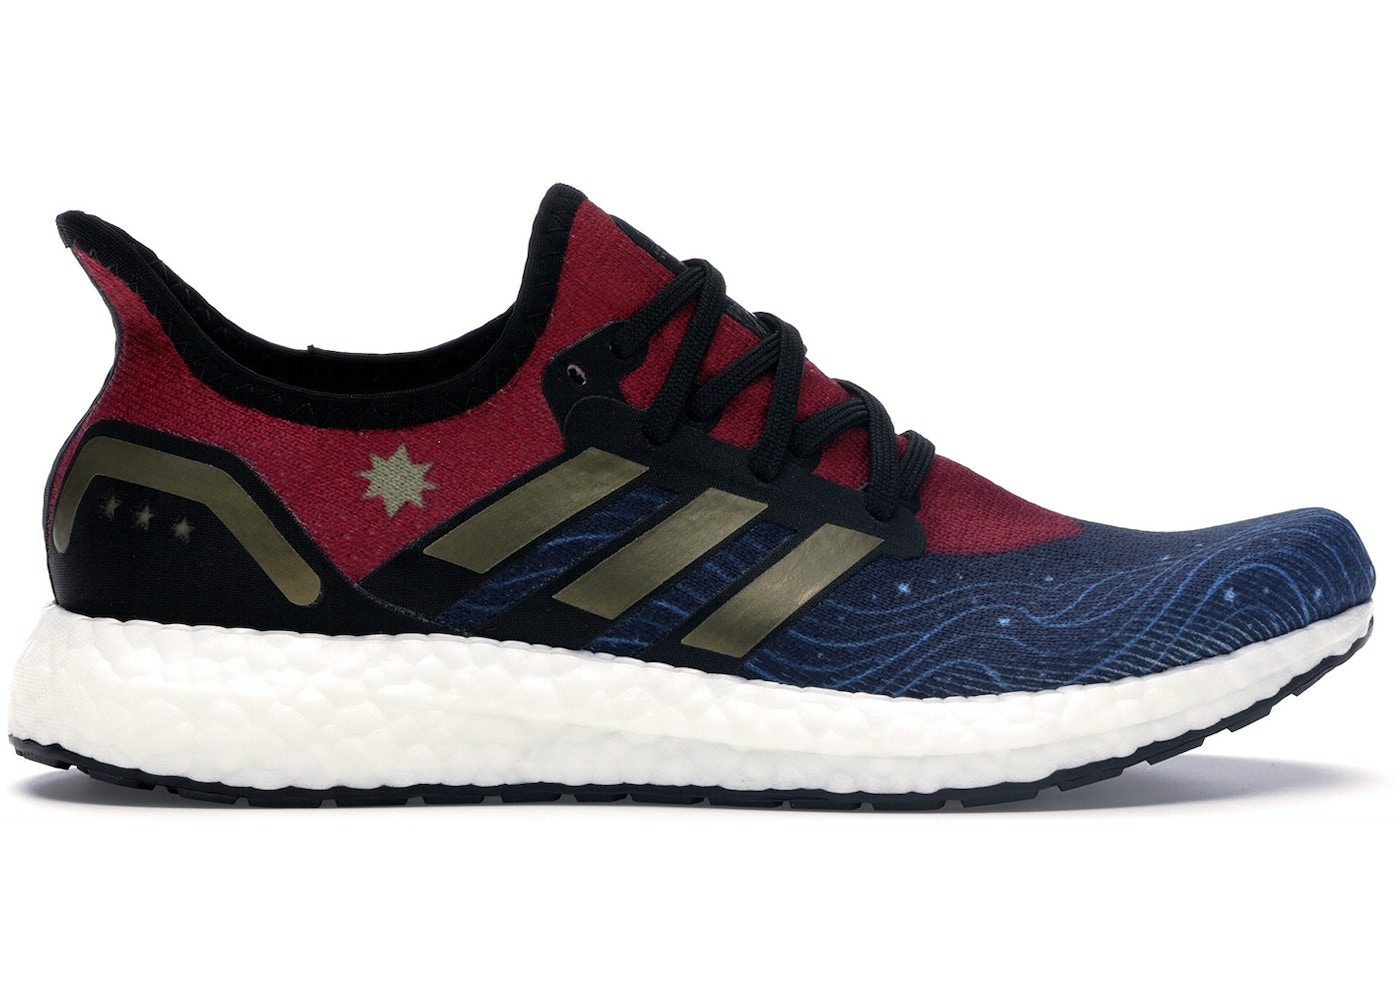 cheaper 8c3e6 63745 adidas Speedfactory AM4 AM4CM Captain Marvel